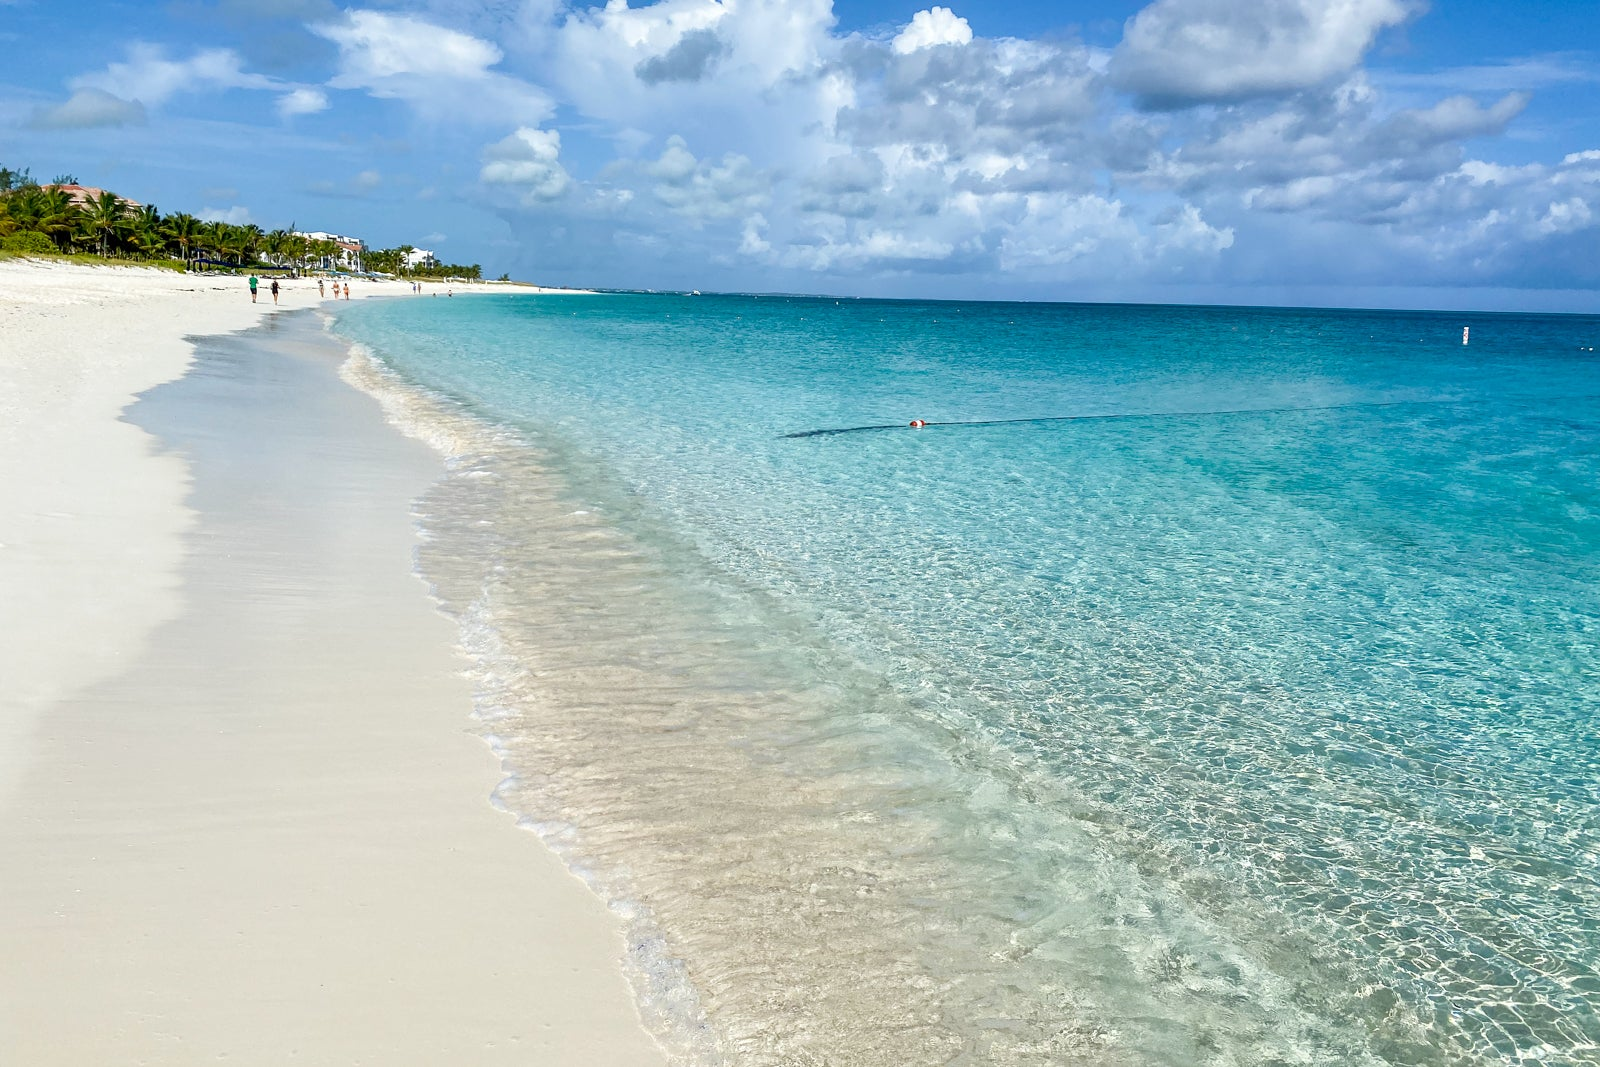 UPDATE: Turks and Caicos reopened to international travelers